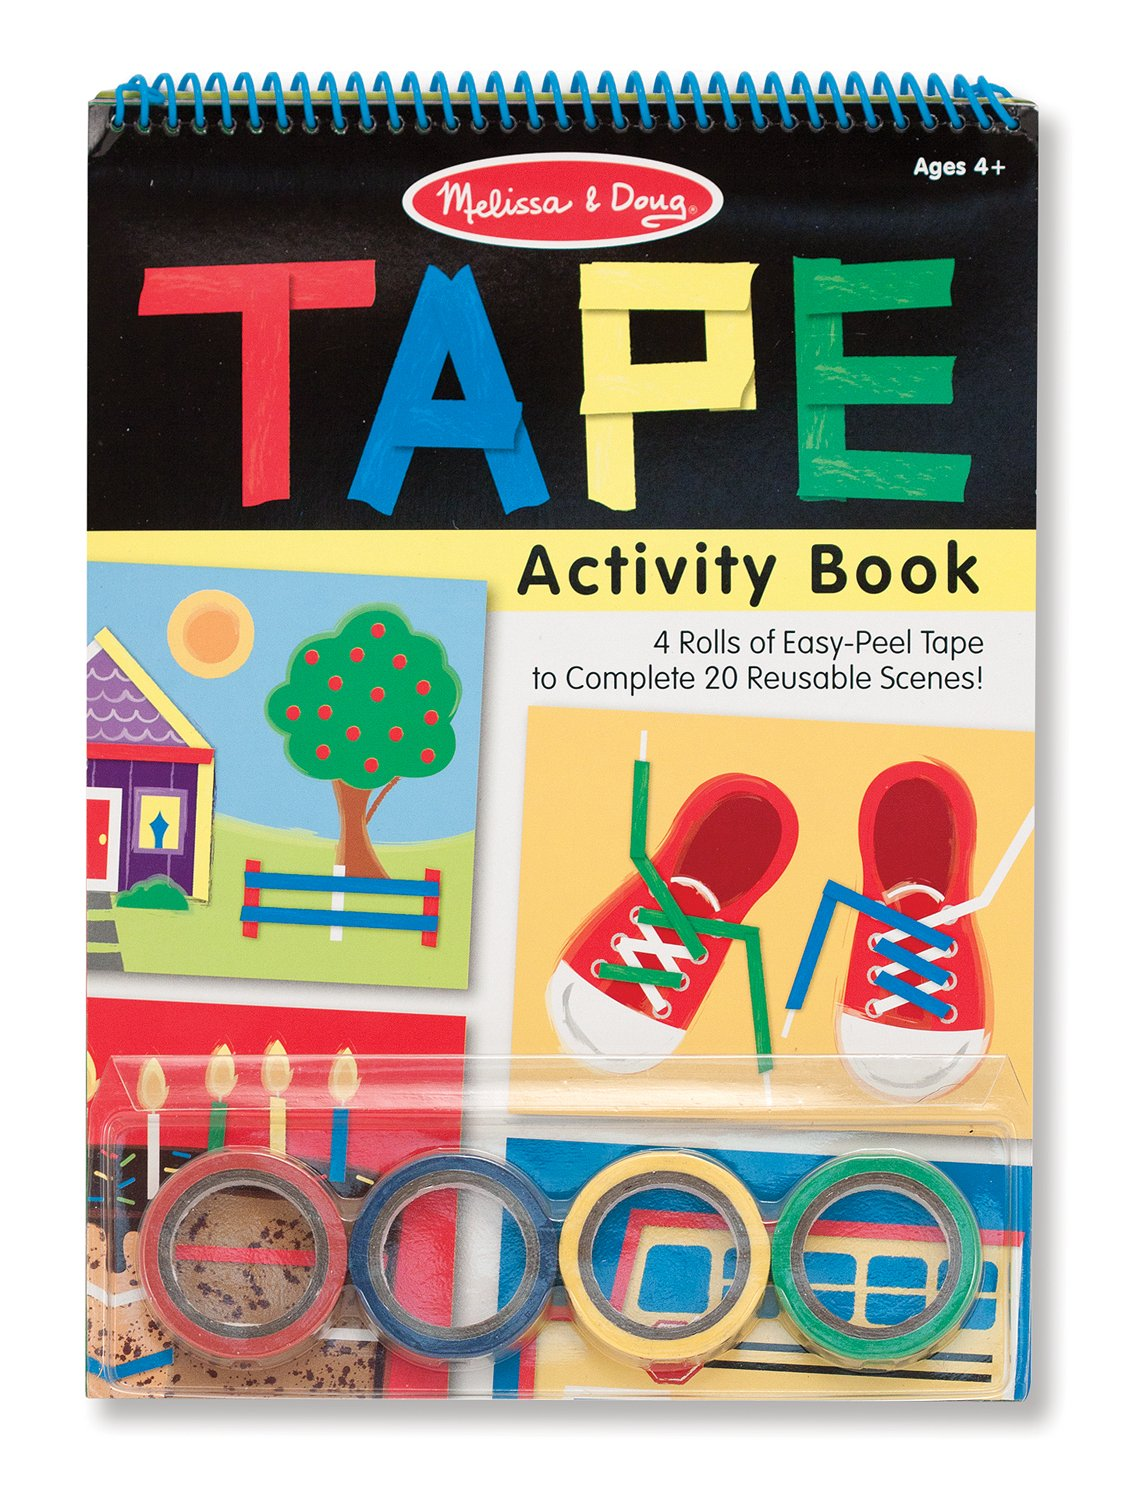 amazoncom melissa doug tape activity book 4 rolls of easy tear tape and 20 reusable scenes melissa doug toys games